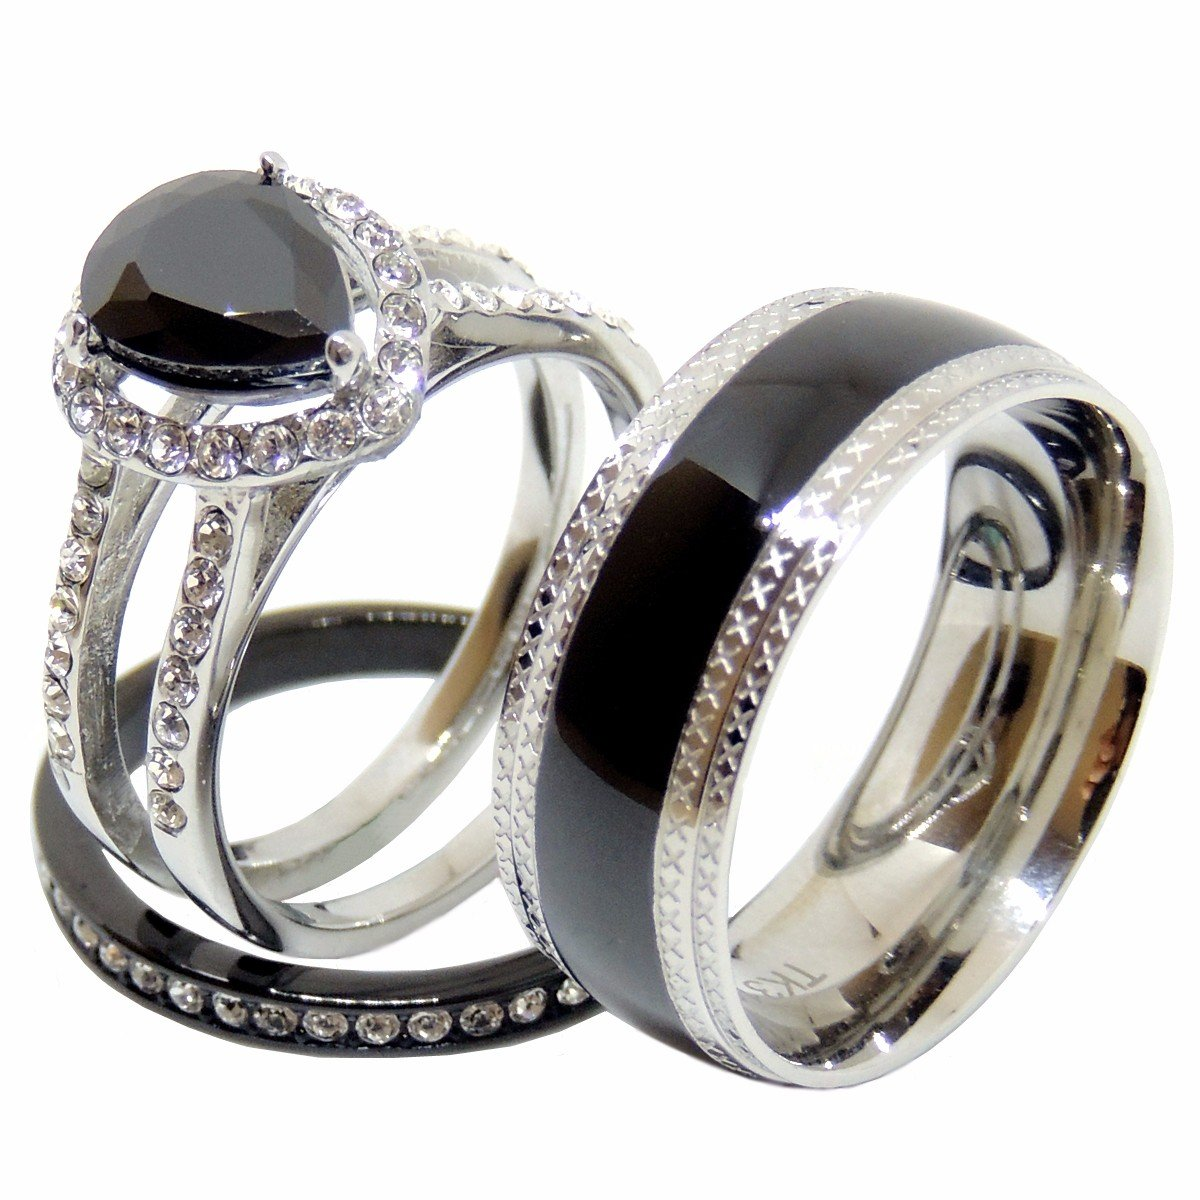 Couples Rings Set Womens Black Stainless Steel Black Pear CZ Wedding Ring Set Mens Promise Band - Size W6M10